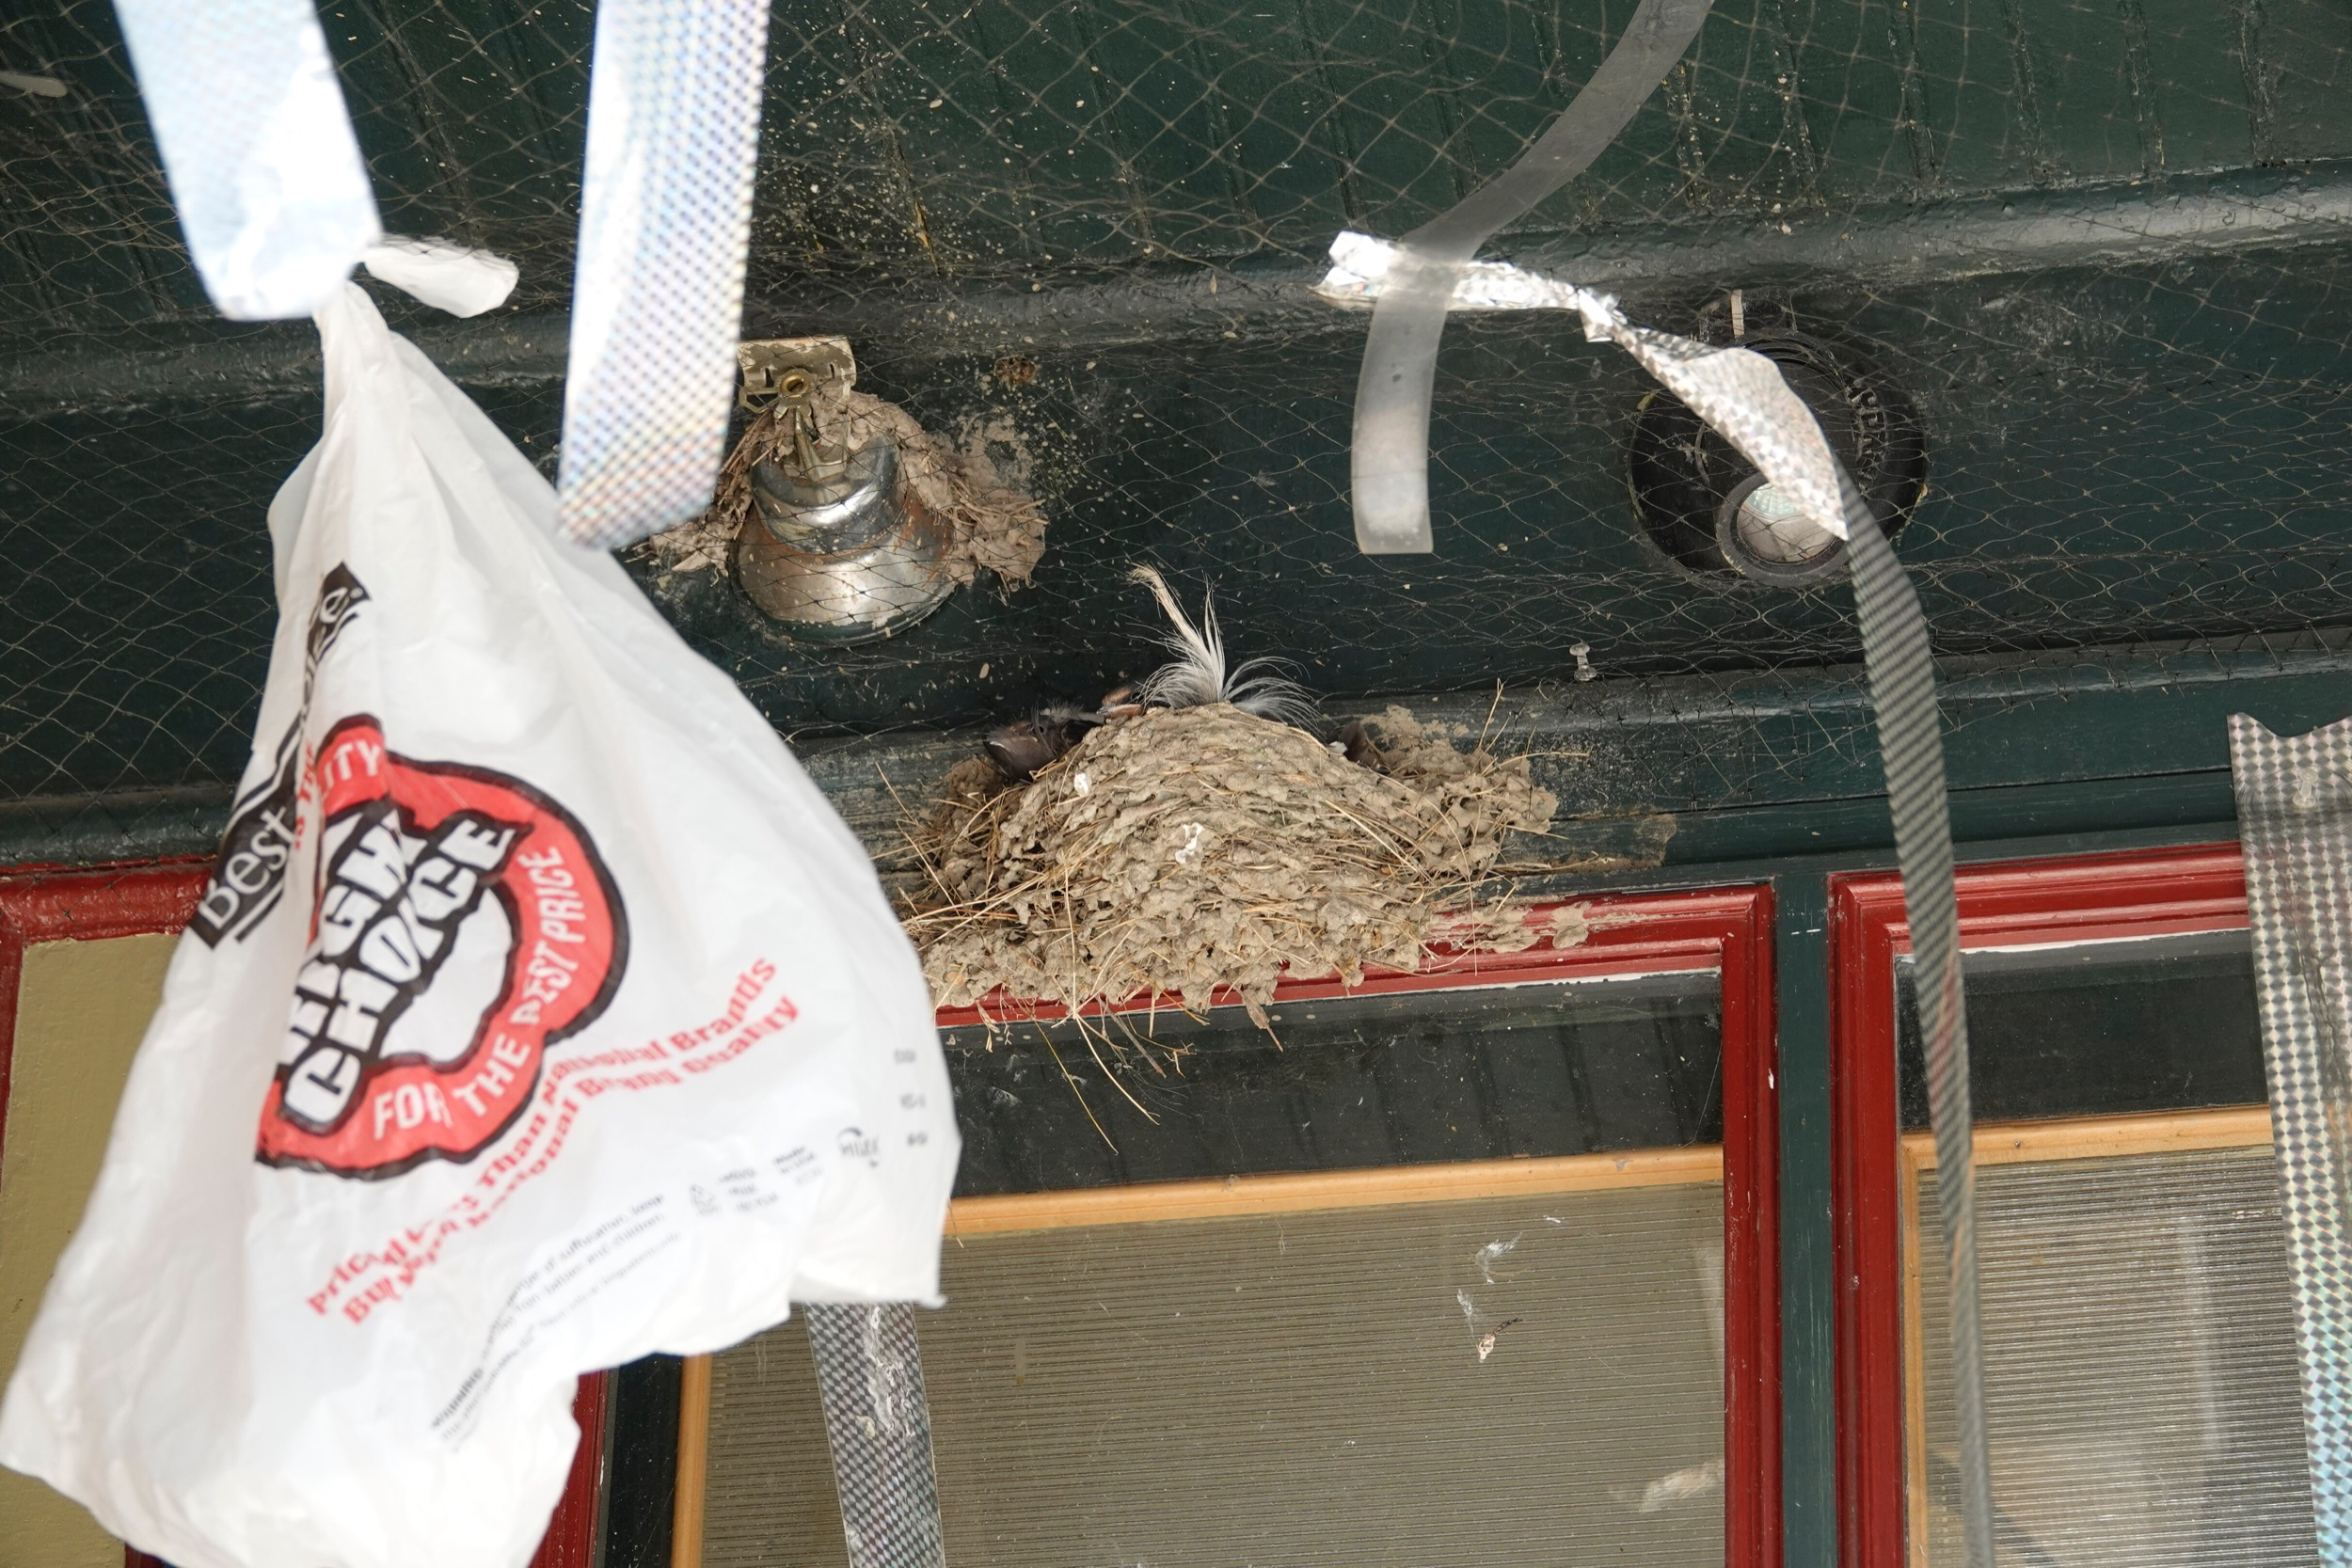 Despite a friend's attempt to discourage nesting, the barn swallows persevered.